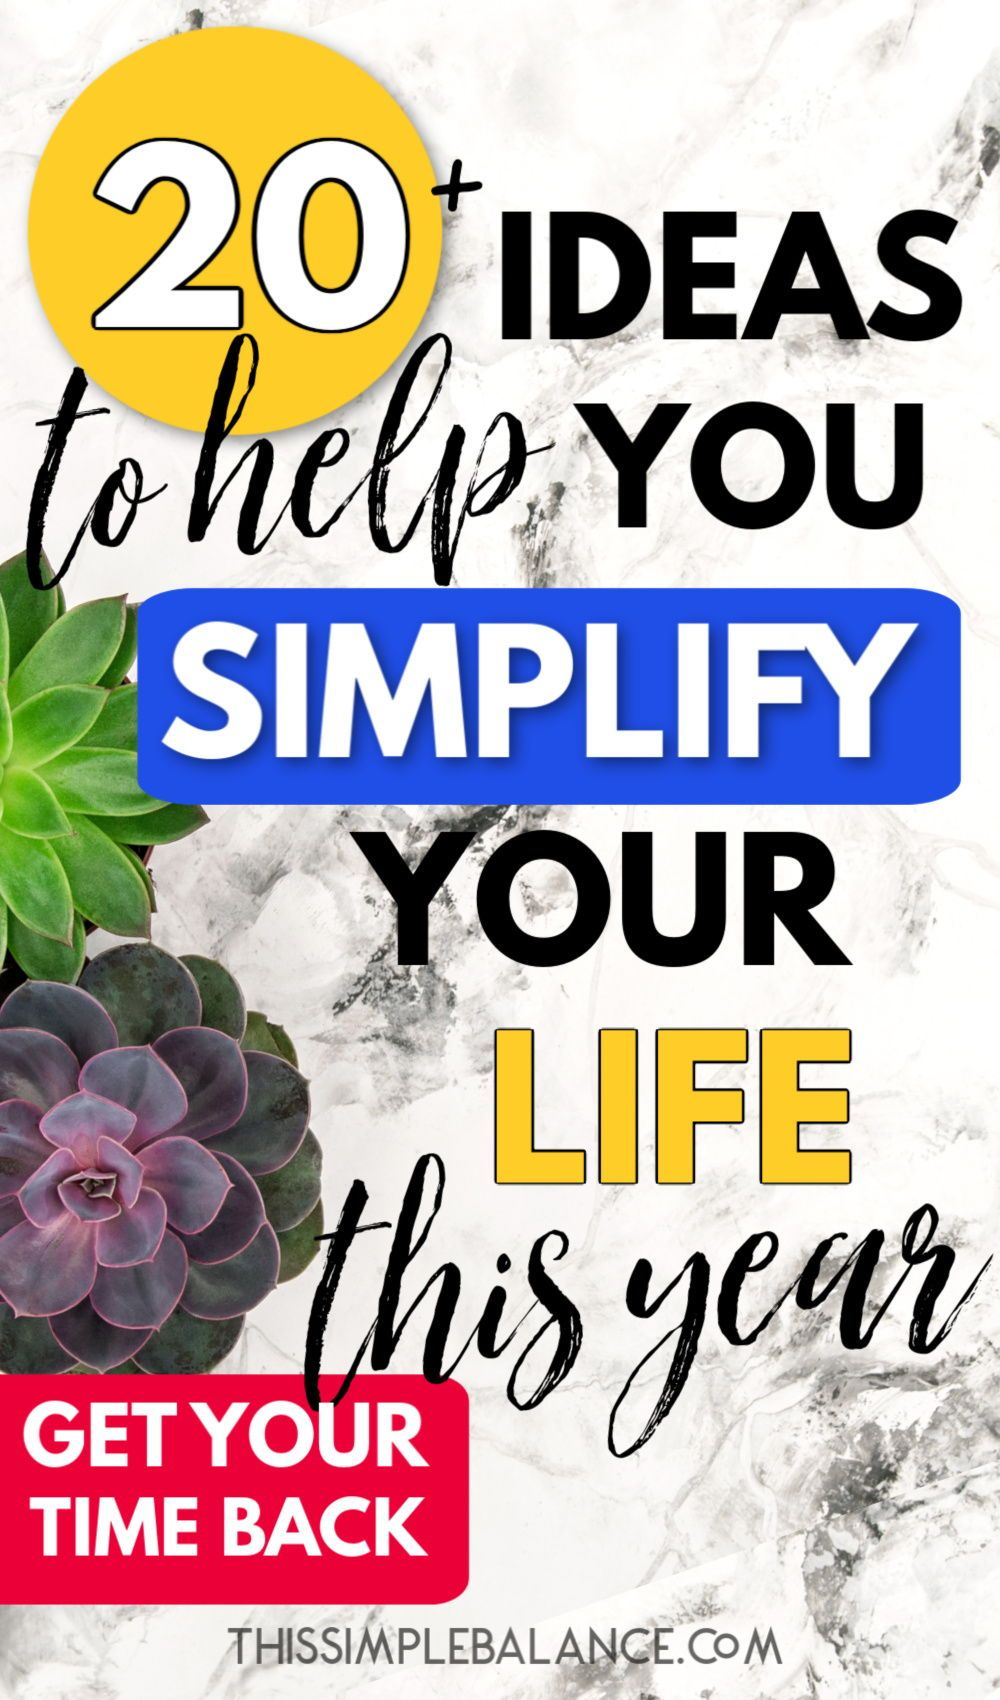 22 Ways to Simplify Your Life & Make Time for What Matters